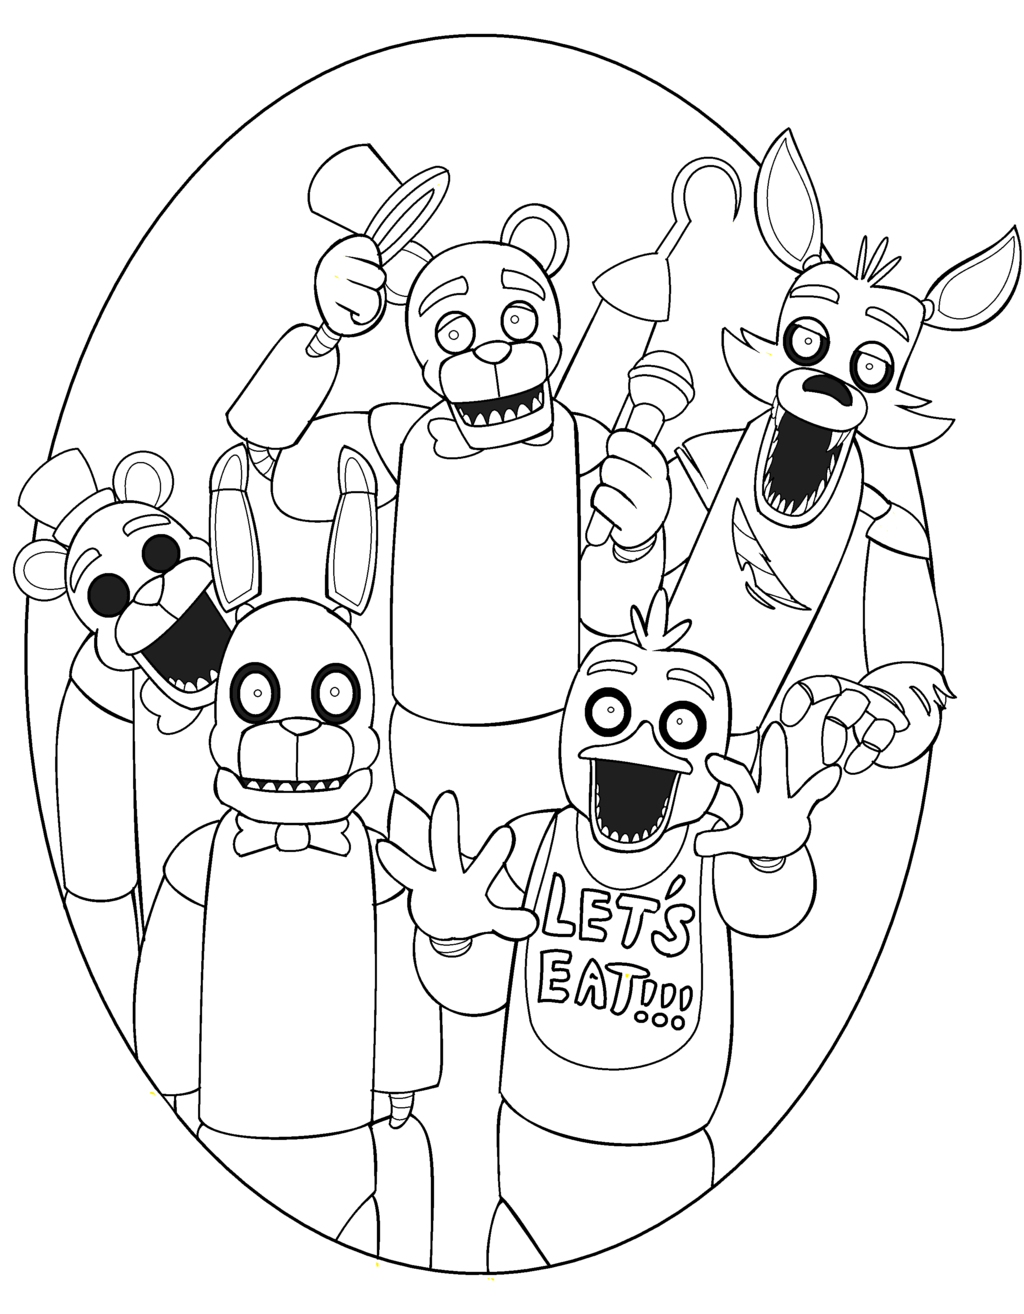 fnaf-coloring-pages-26 - Coloring Pages For Kids